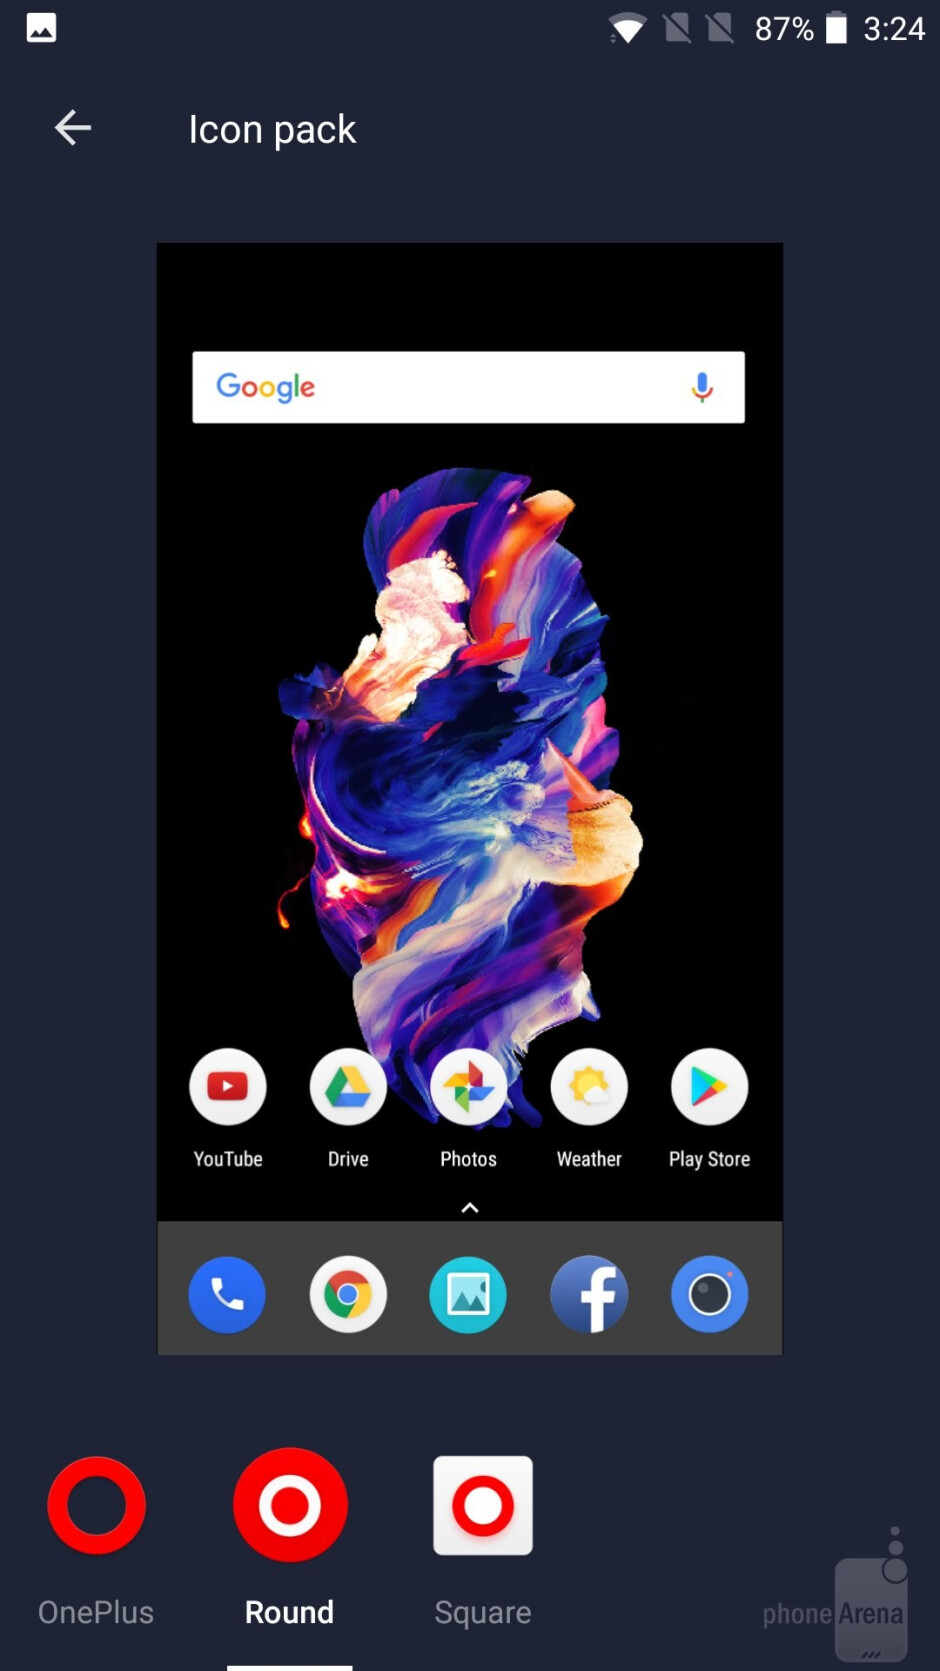 The OnePlus 5 features a clean Android interface that the company calls OxygenOS - OnePlus 5 vs Samsung Galaxy S8+